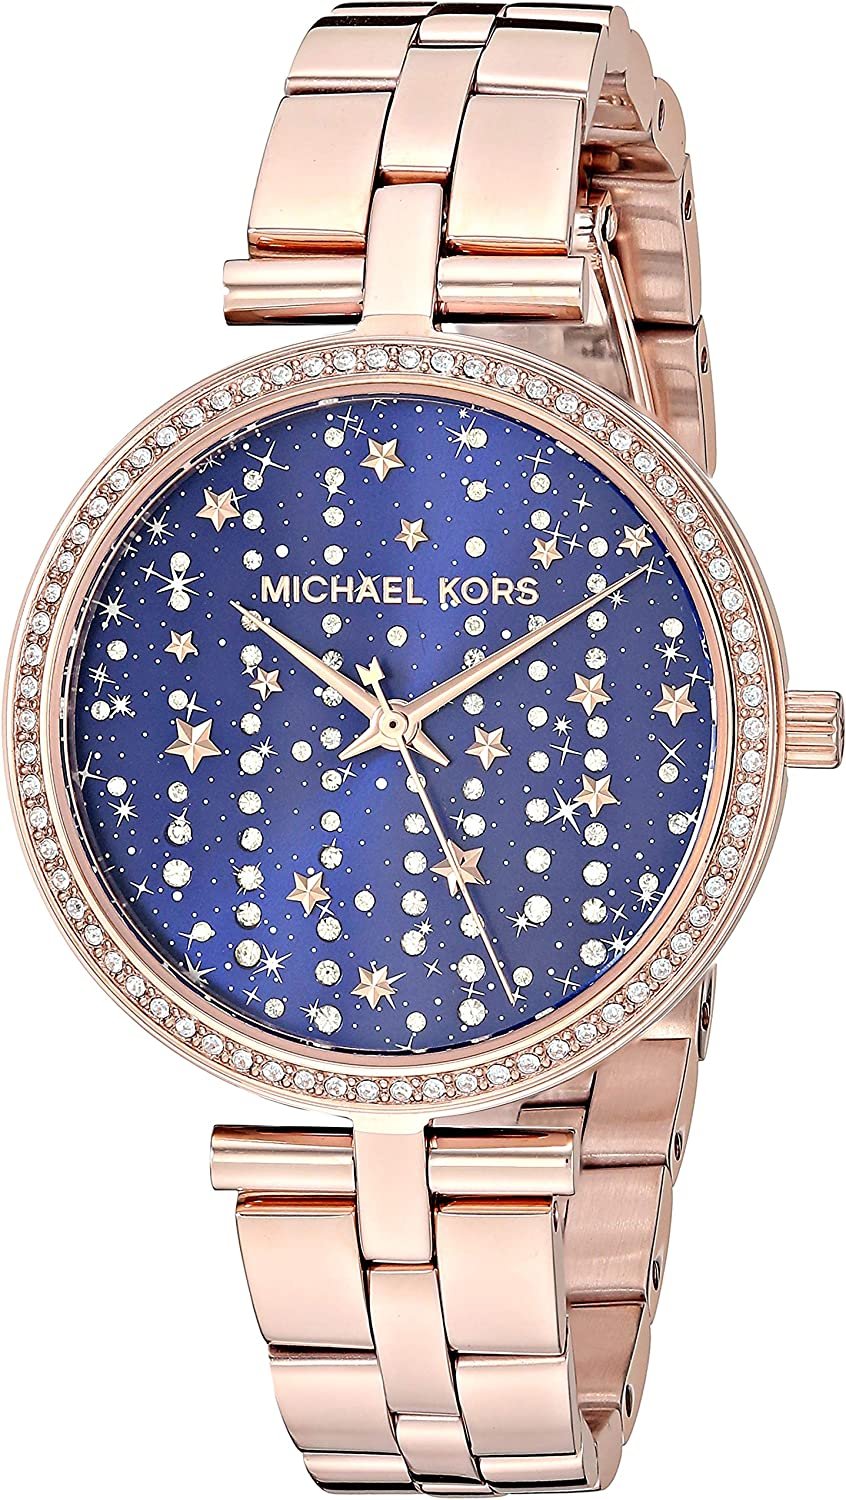 Michael Kors Women's Maci Stainless Steel Quartz Watch with Leather Strap